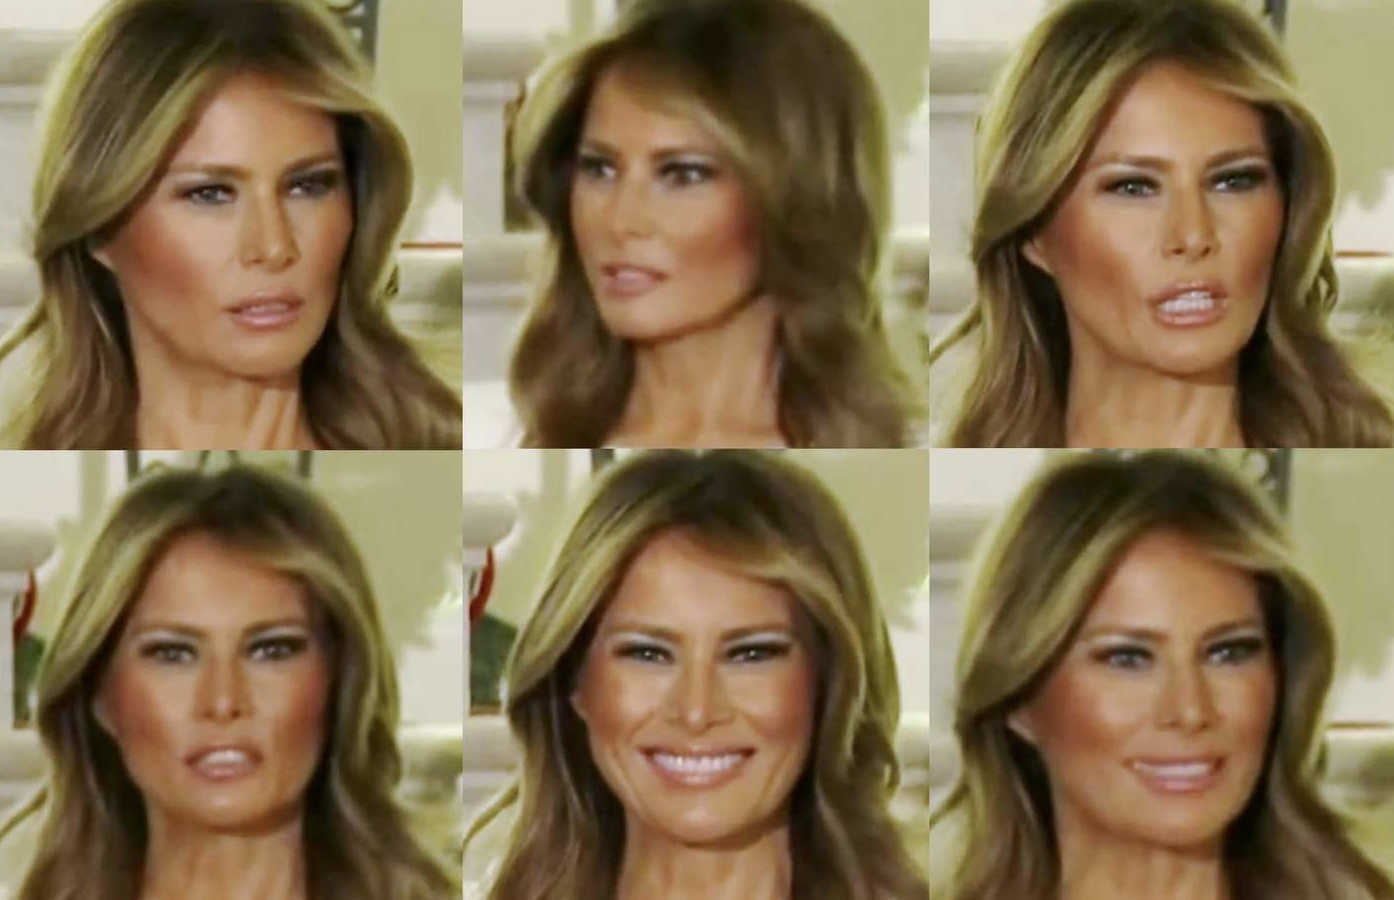 Melania Trump Makes A Series Of Weird Faces At Congressional Ball